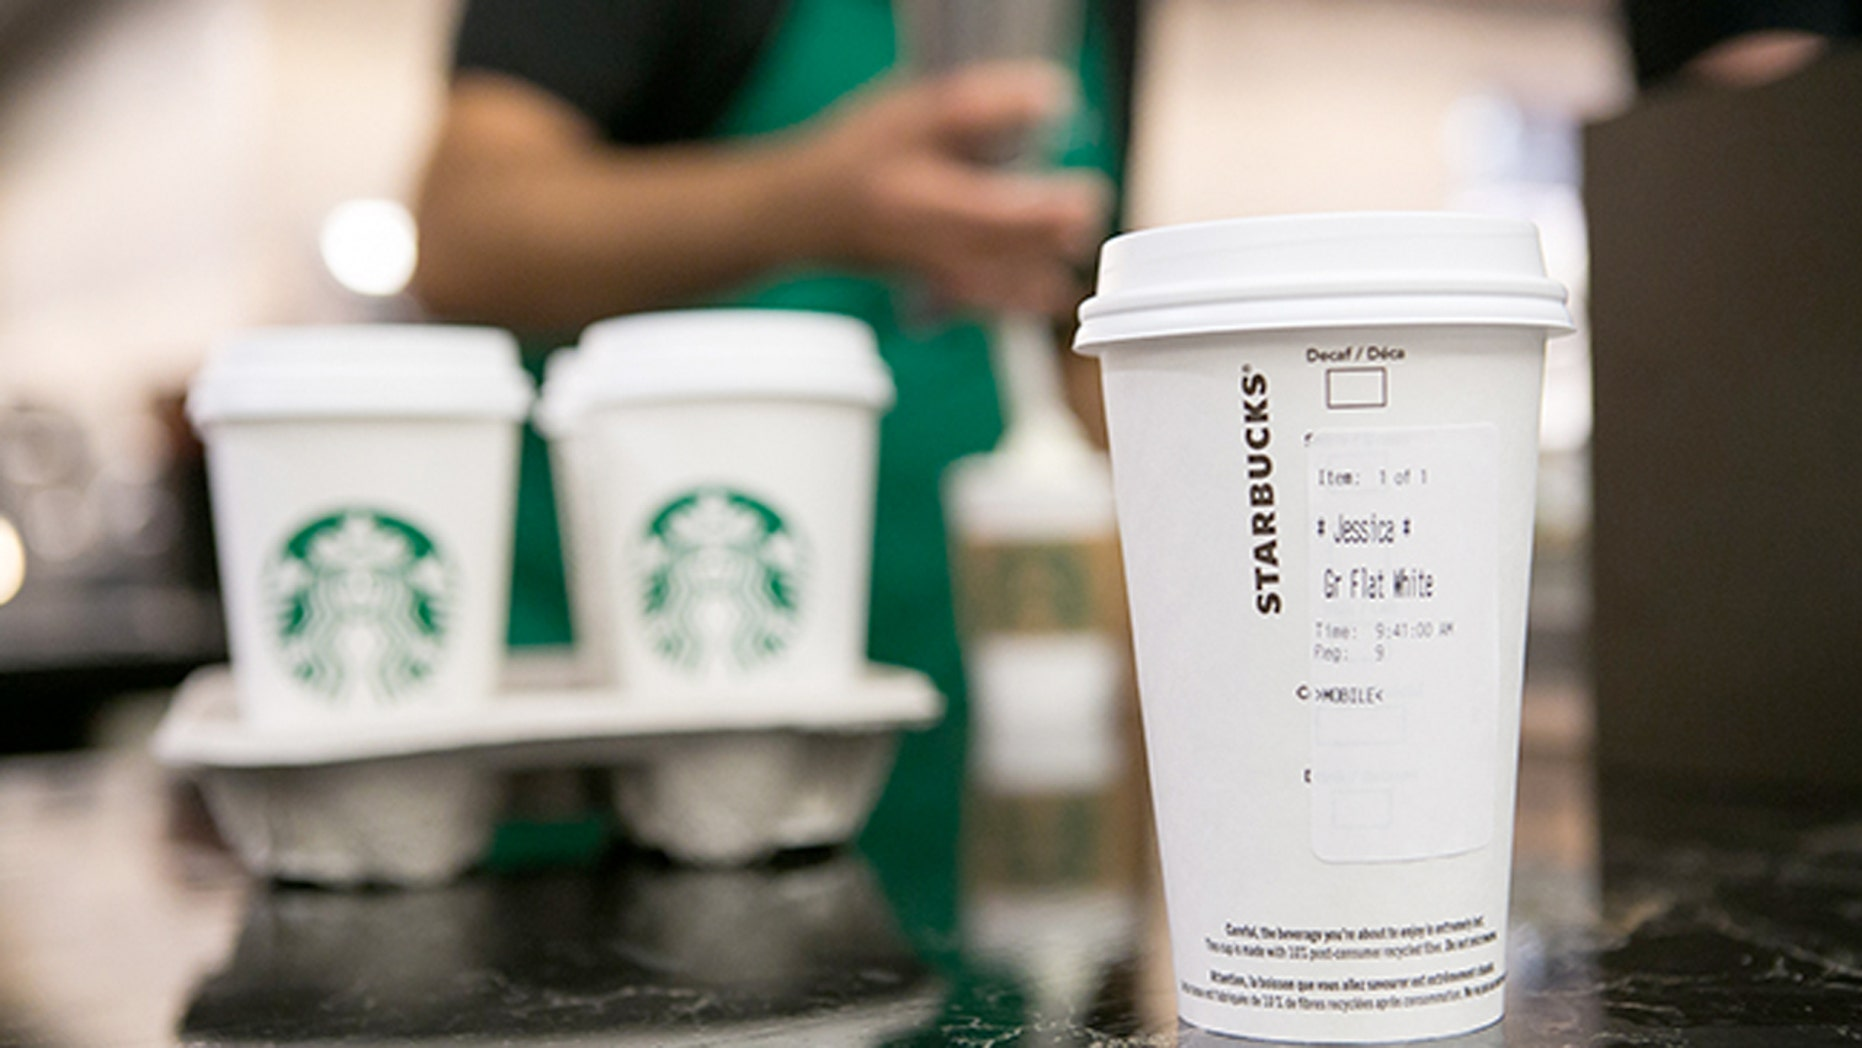 Starbucks is now processing more than 6 million Mobile Order and Pay transactions per month, the company said.